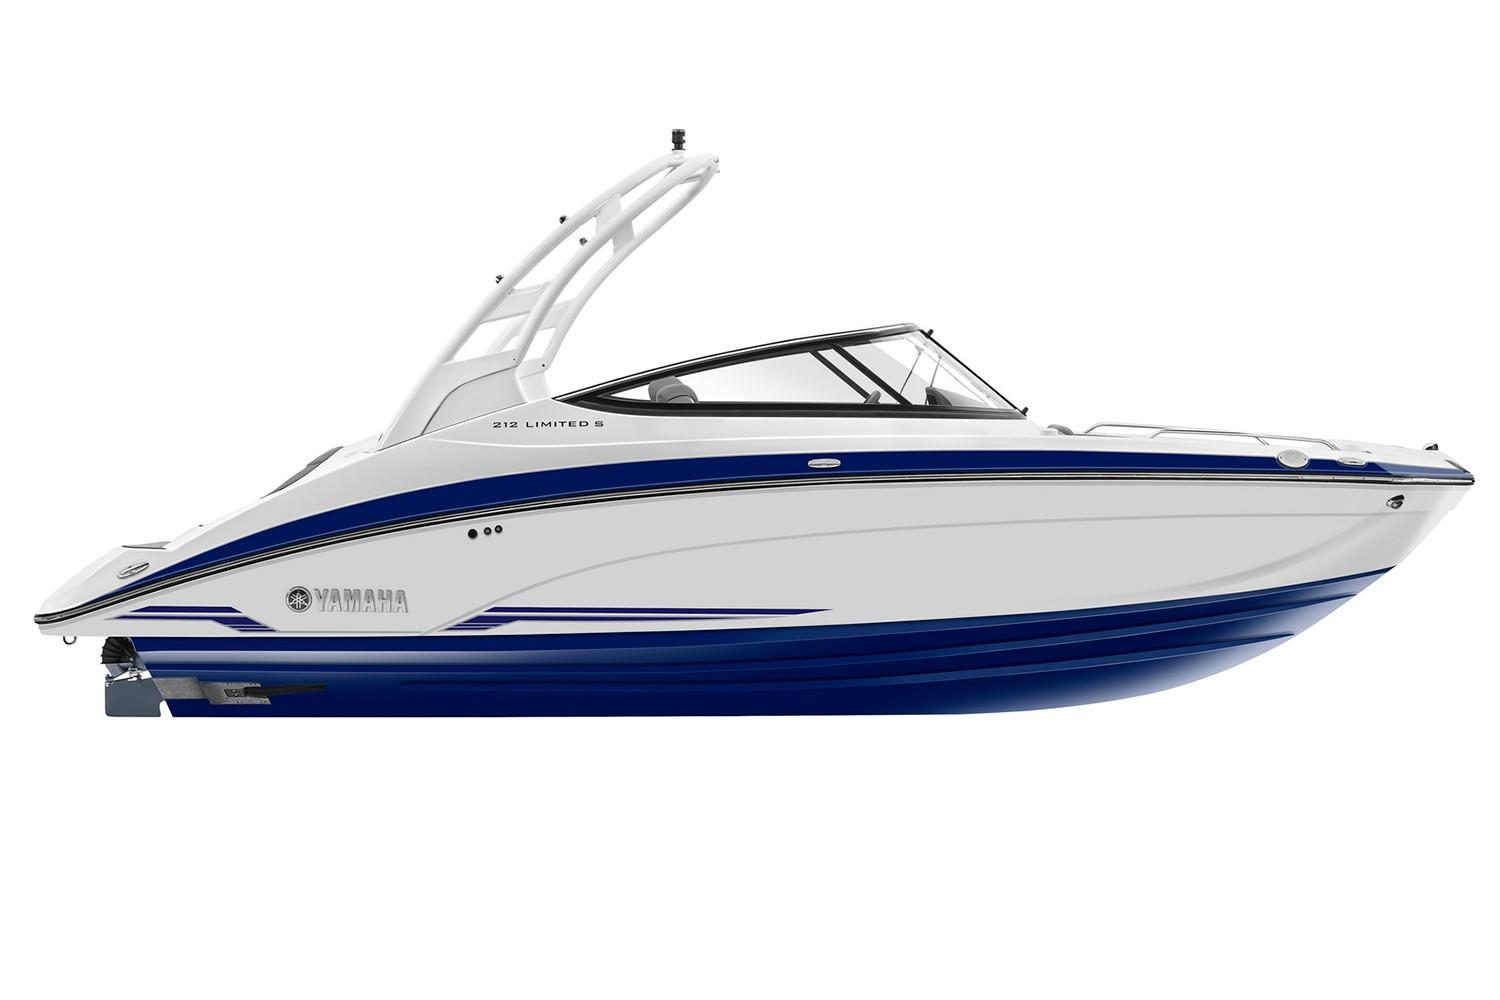 2019 Yamaha 212 Limited S in Gulfport, Mississippi - Photo 12